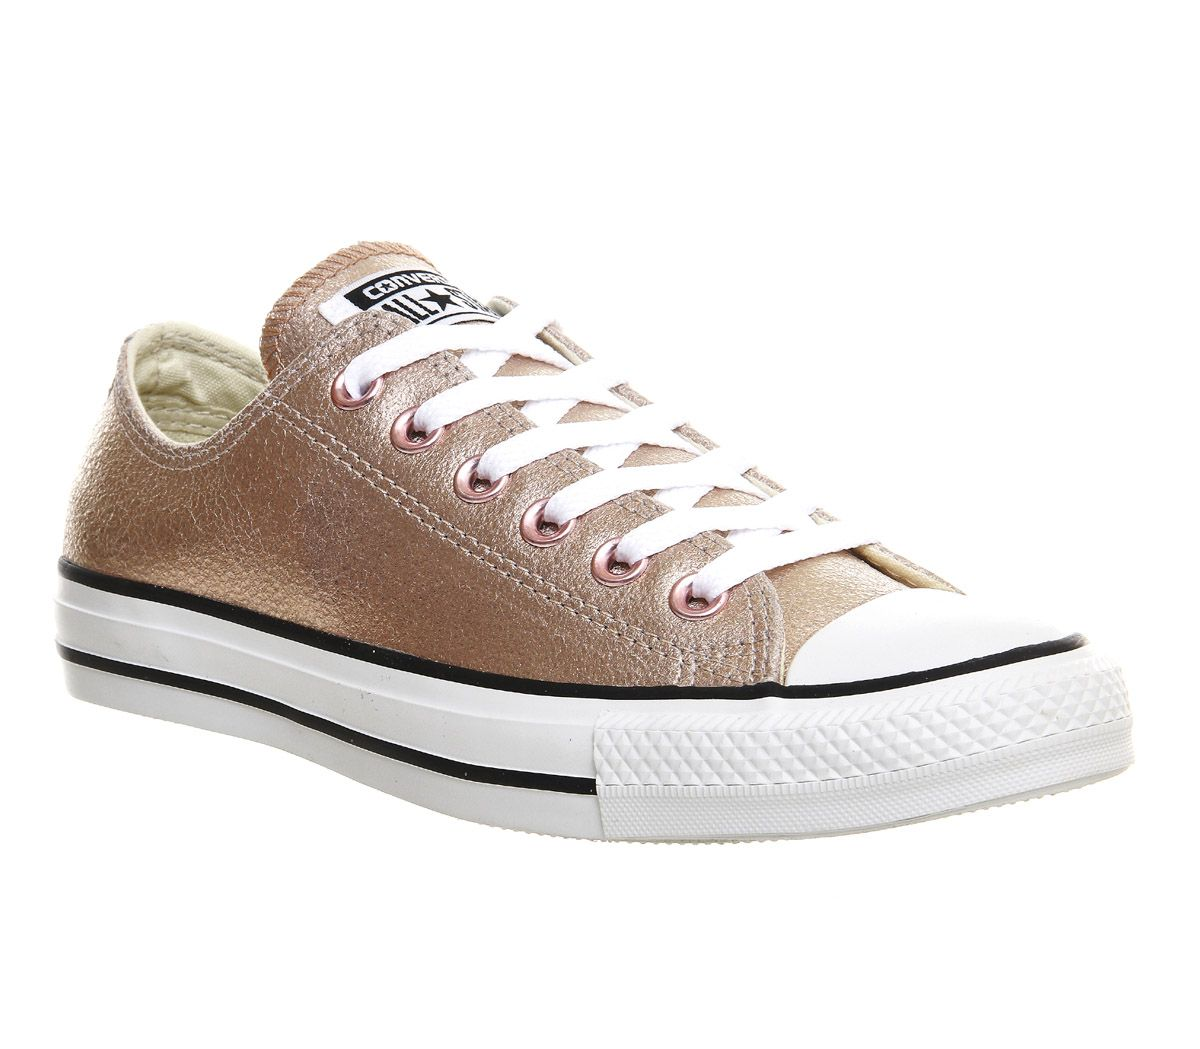 competitive price 911bc cdb8c Converse Allstar Low Lthr Rose Gold Exclusive - Unisex Sports Zapatillas  Dama, Tenis, Zapatos